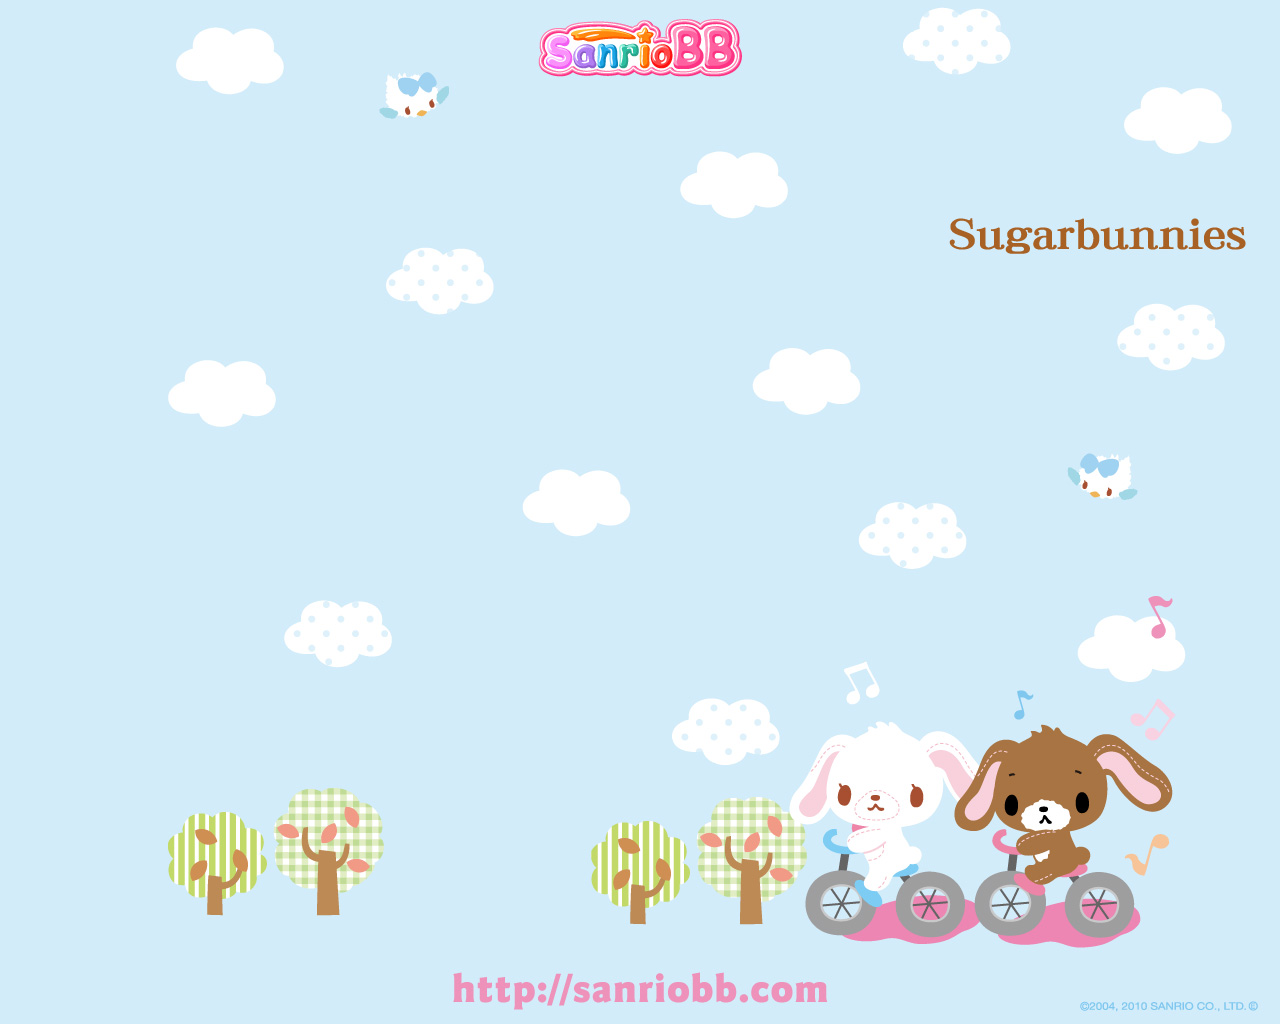 Displaying 13 Images For   Sugarbunnies 1280x1024